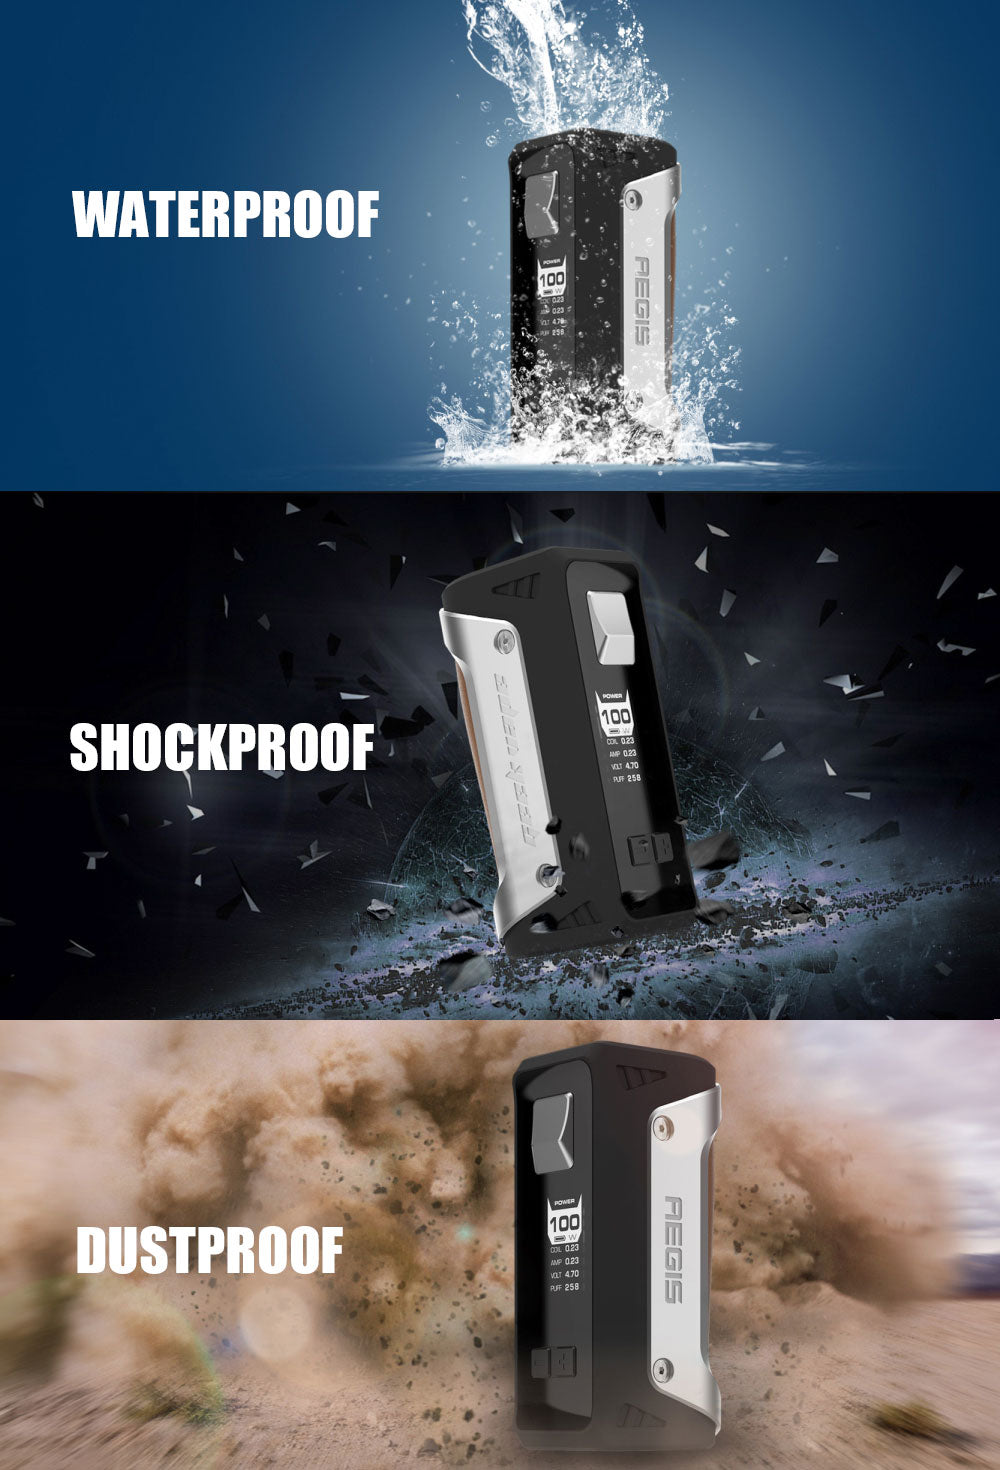 GeekVape Aegis 100W Mod with Shield Tank Kit Waterproof Shockproof Dustproof